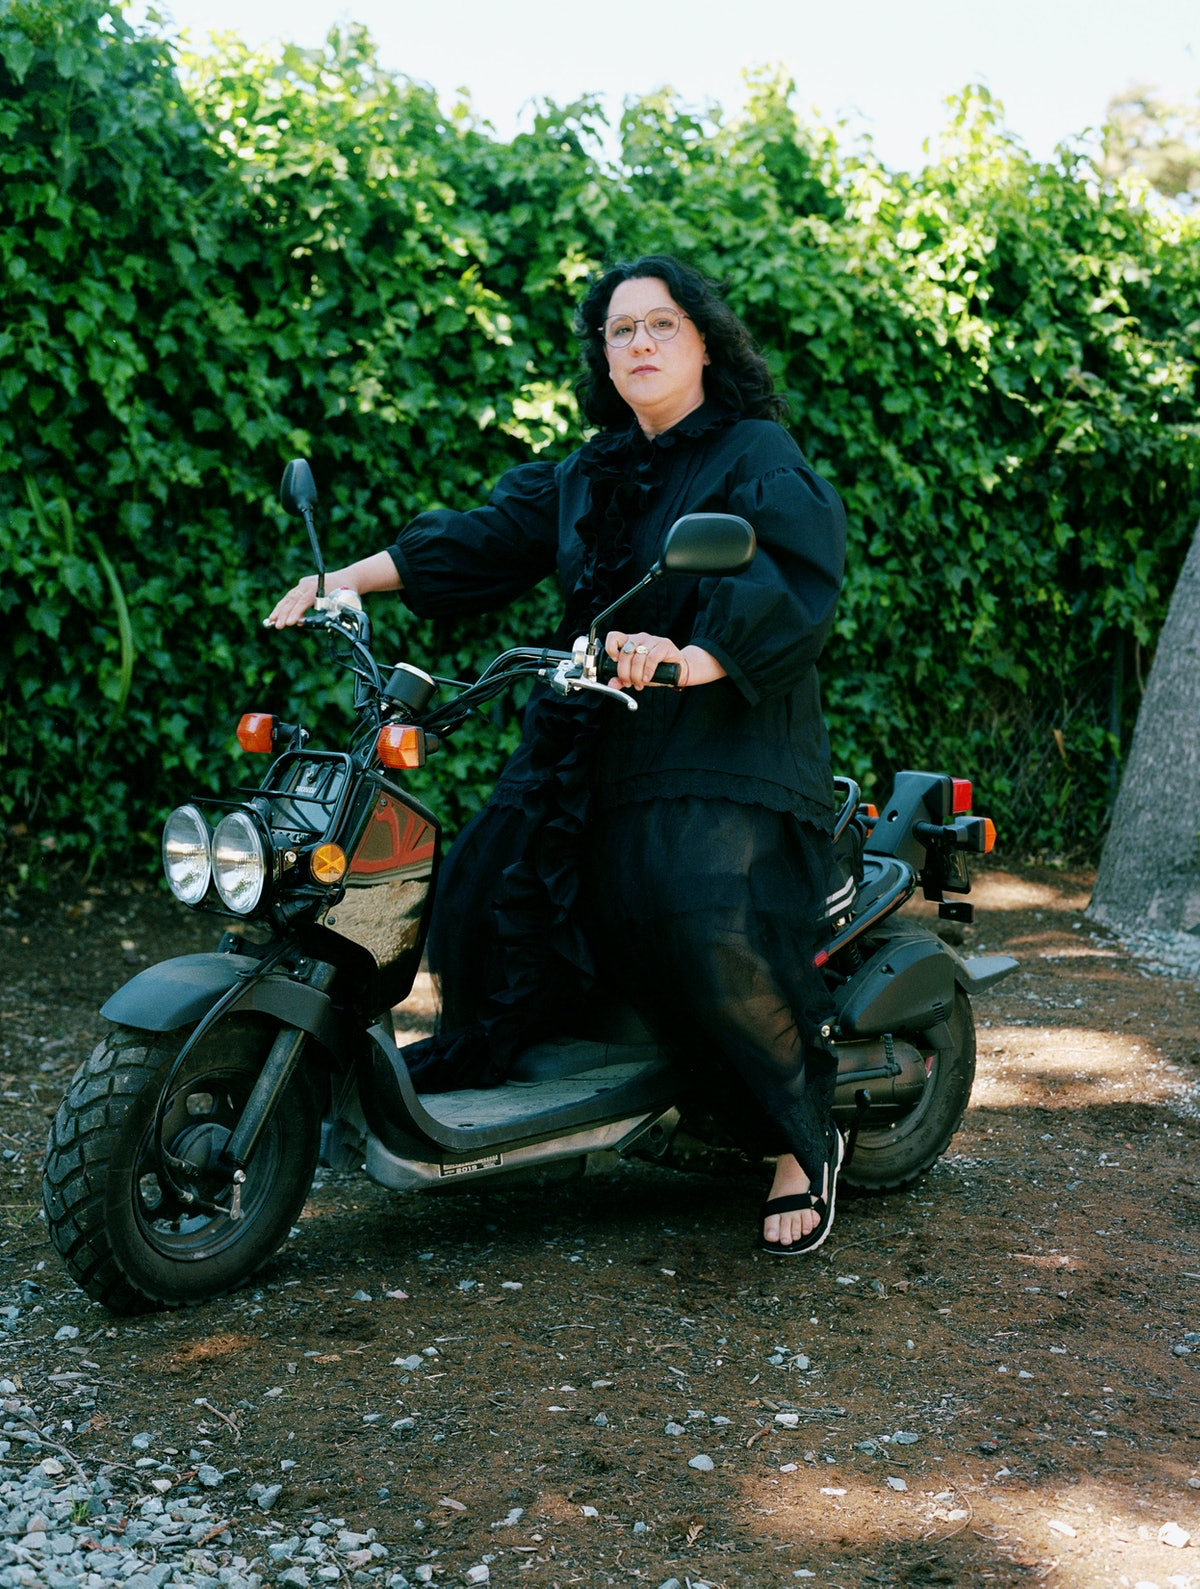 clare rojas on a motorcycle